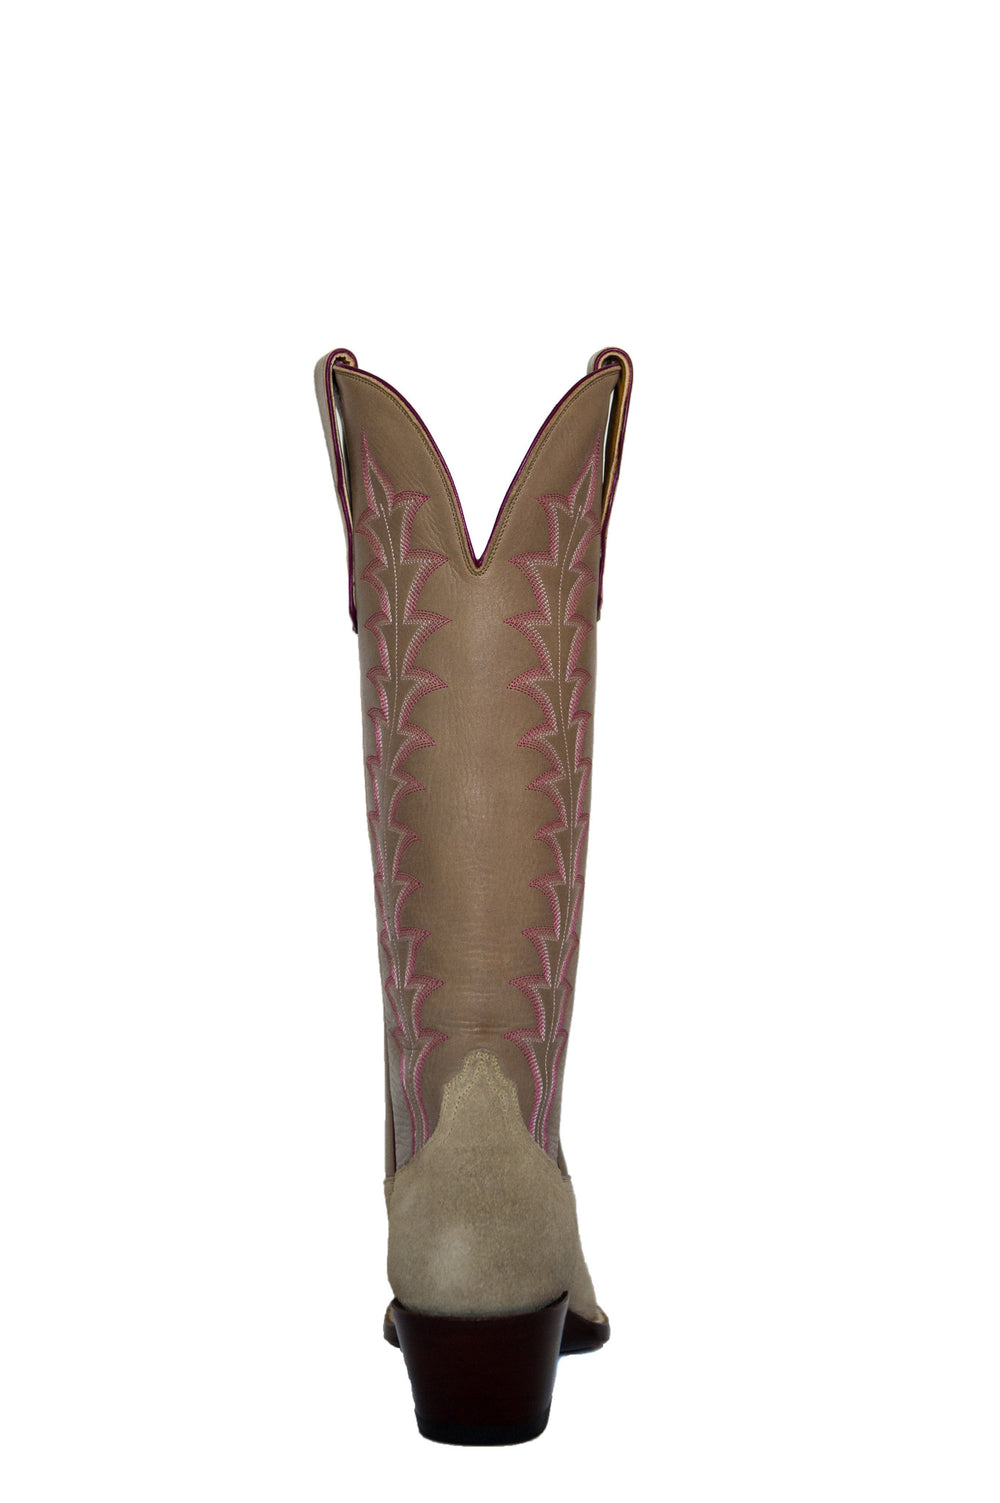 CITY Boots Bowie Women's Beige Two-Tone Cowboy Boots